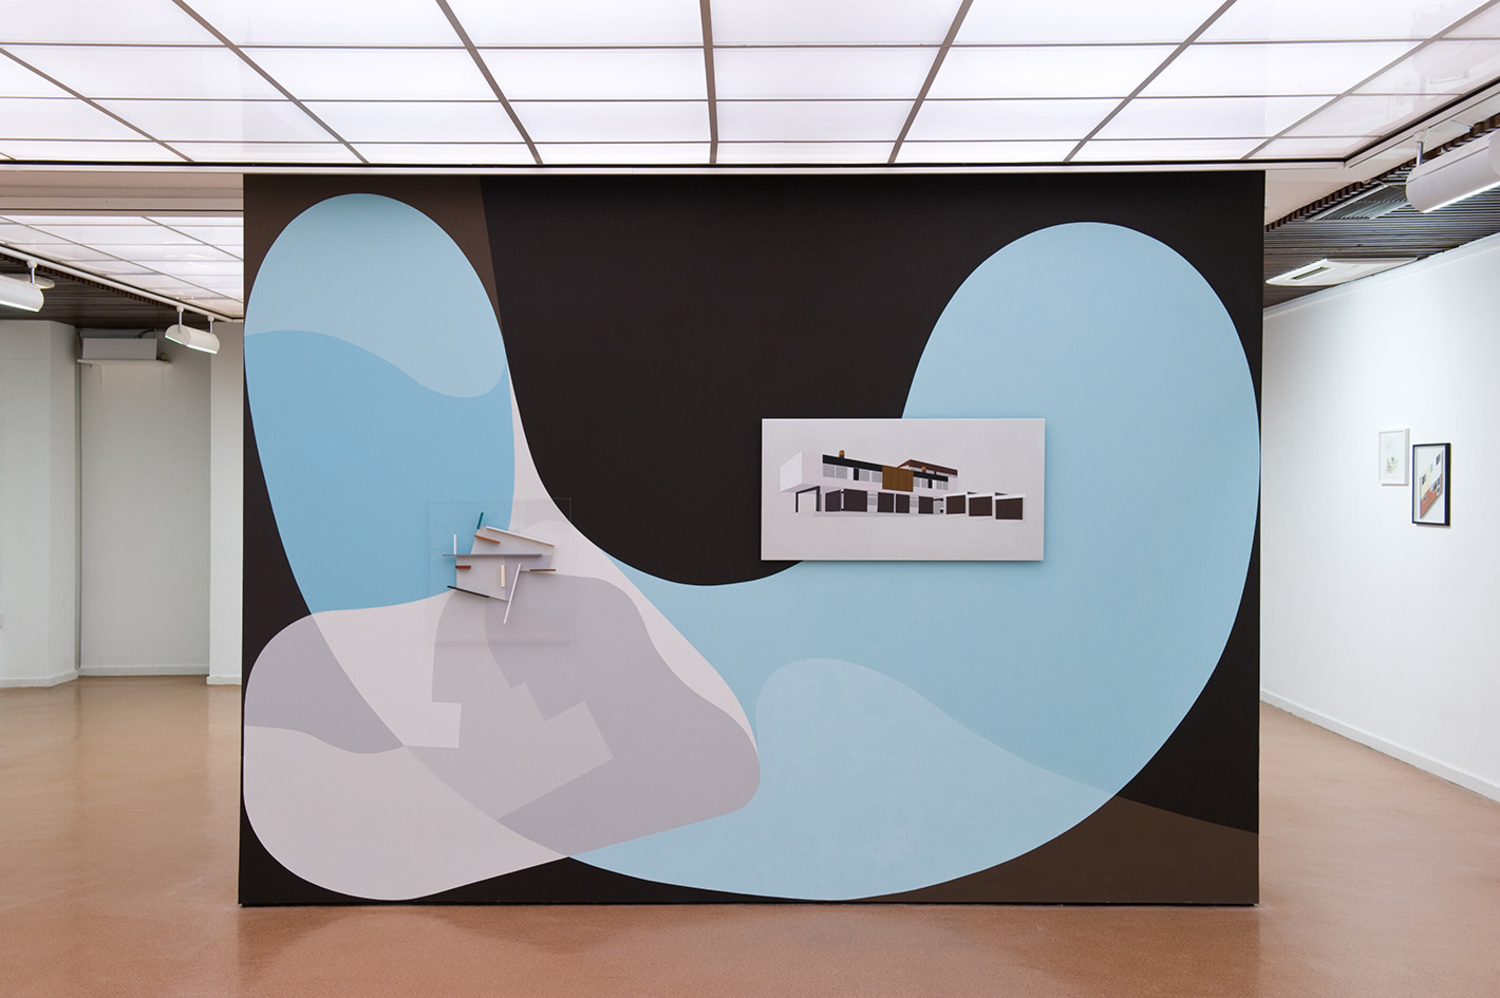 Installation view, 'An Experiment for Total Environment', Durham Art Gallery, Durham (Solo, 29/11/2012—03/2013, with works by Victor Pasmore)